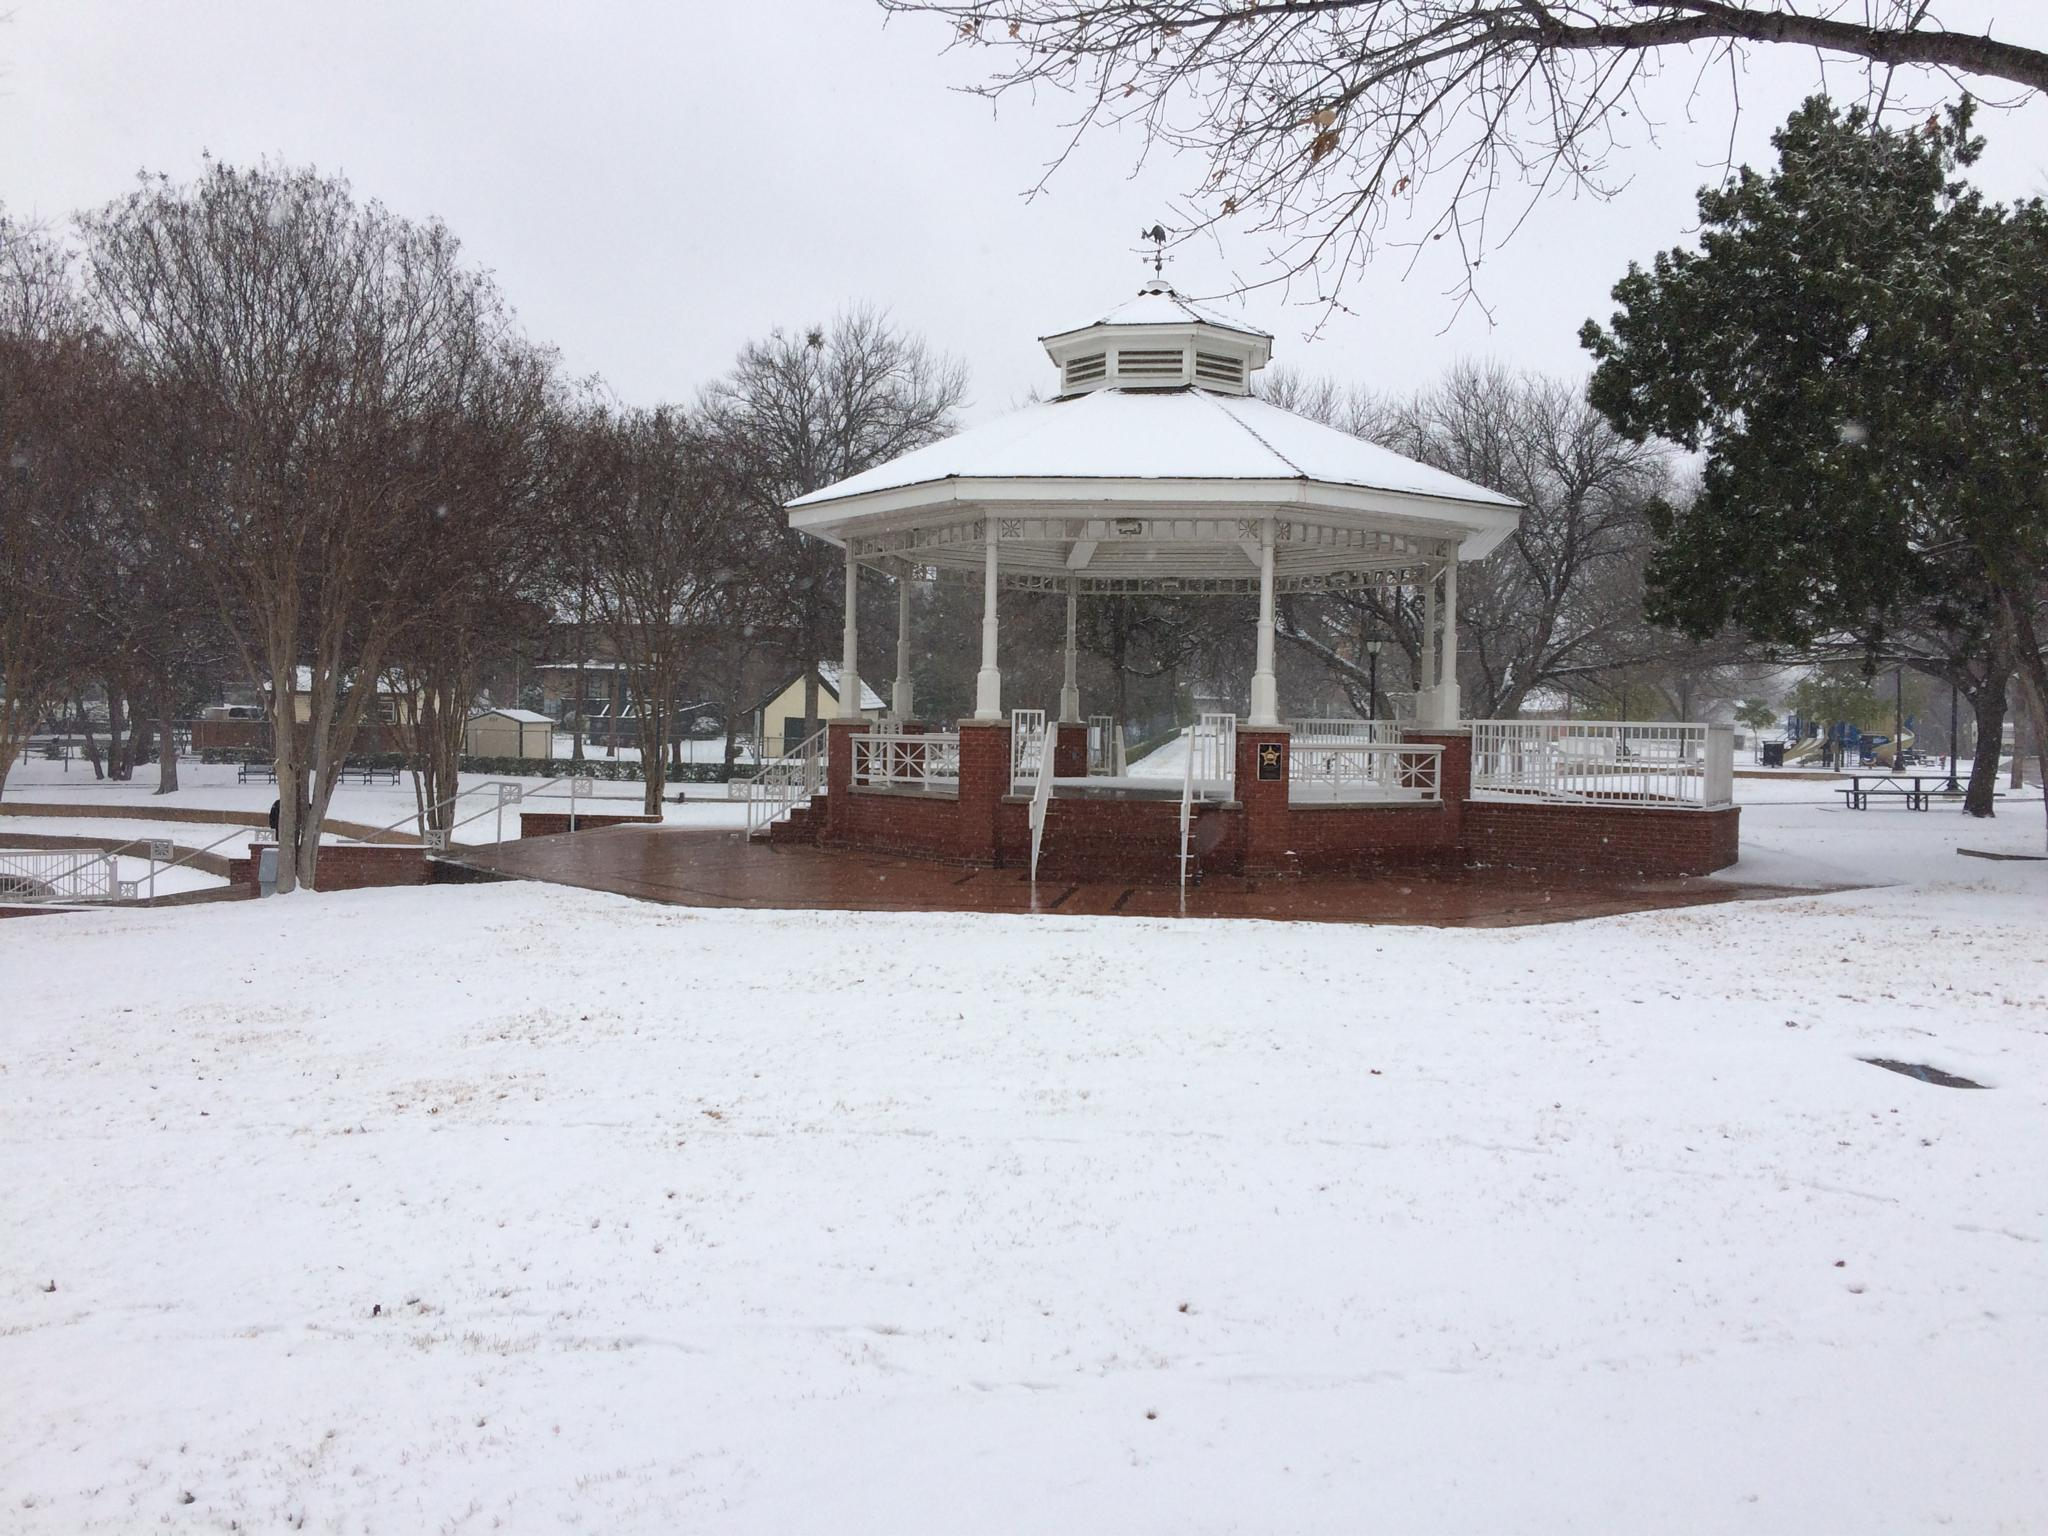 Snow in the park by Greg Lane